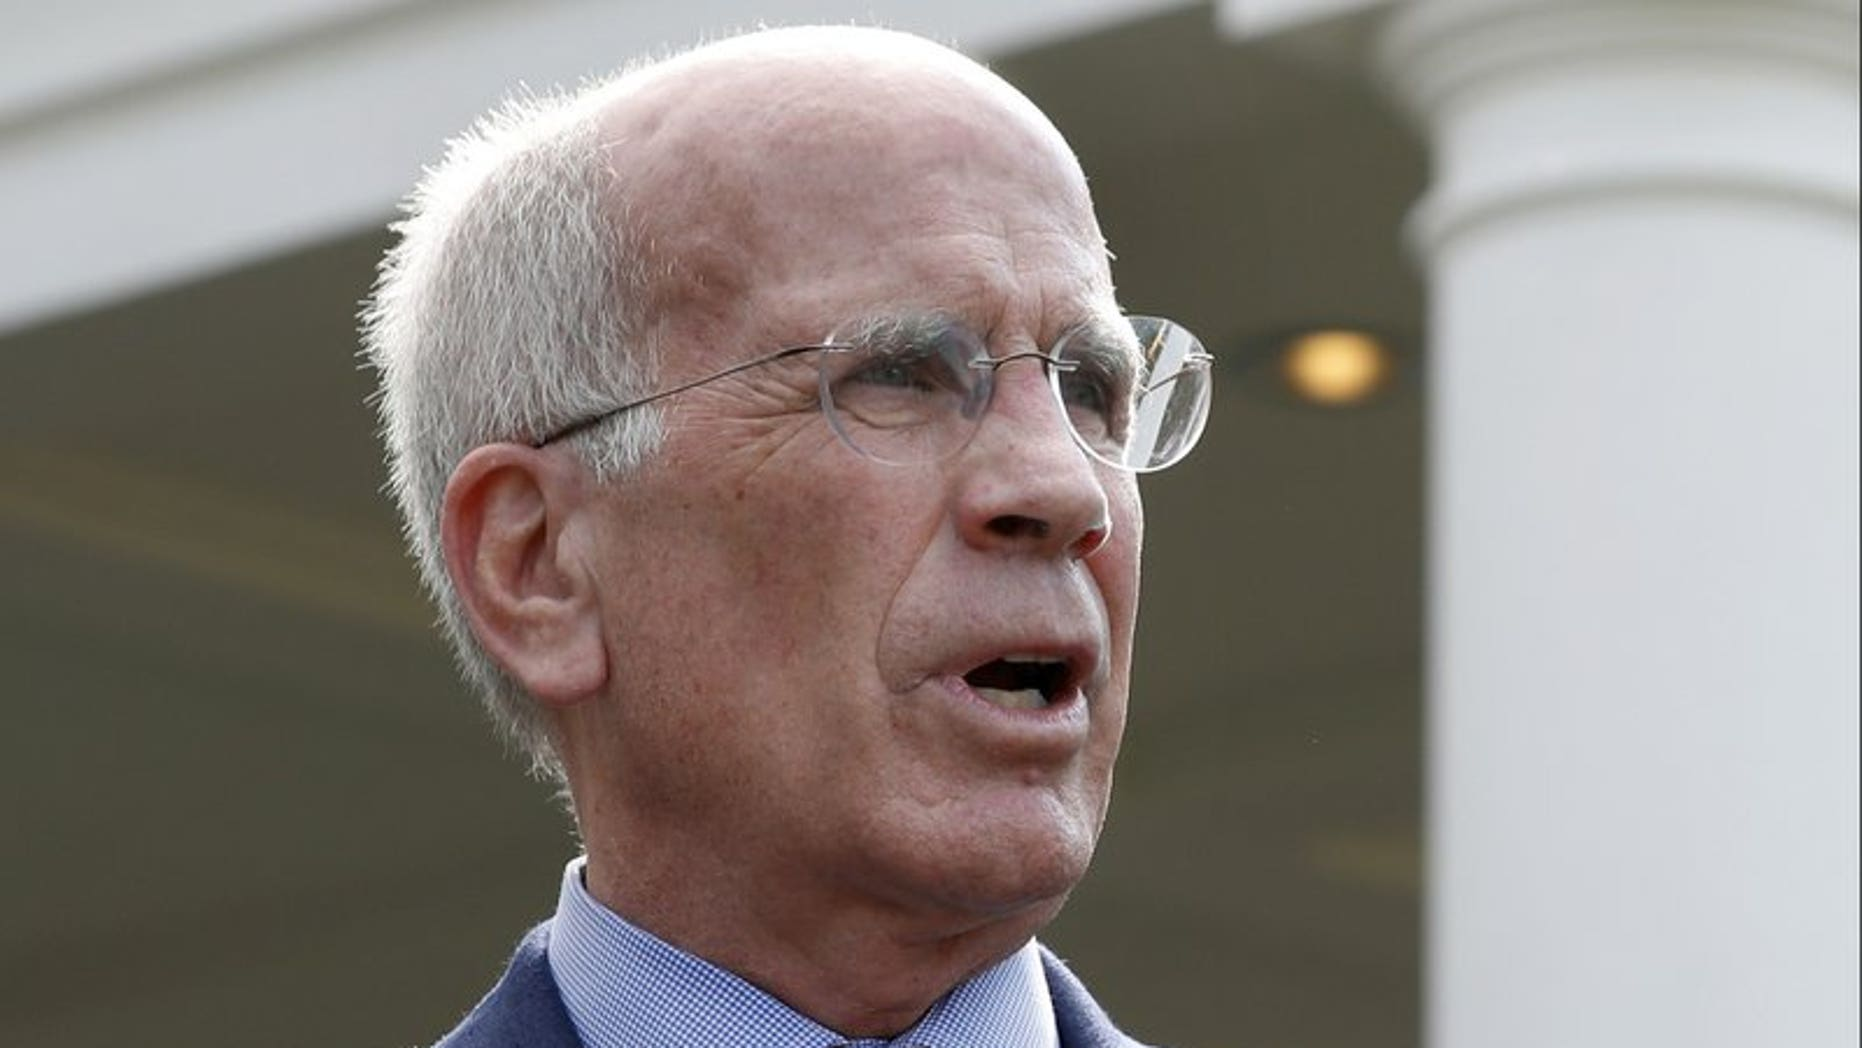 U.S. Rep. Peter Welch, D-Vt., speaks in front of the West Wing after a bipartisan meeting with President Trump at the White House in Washington, Sept. 13, 2017. (Associated Press)